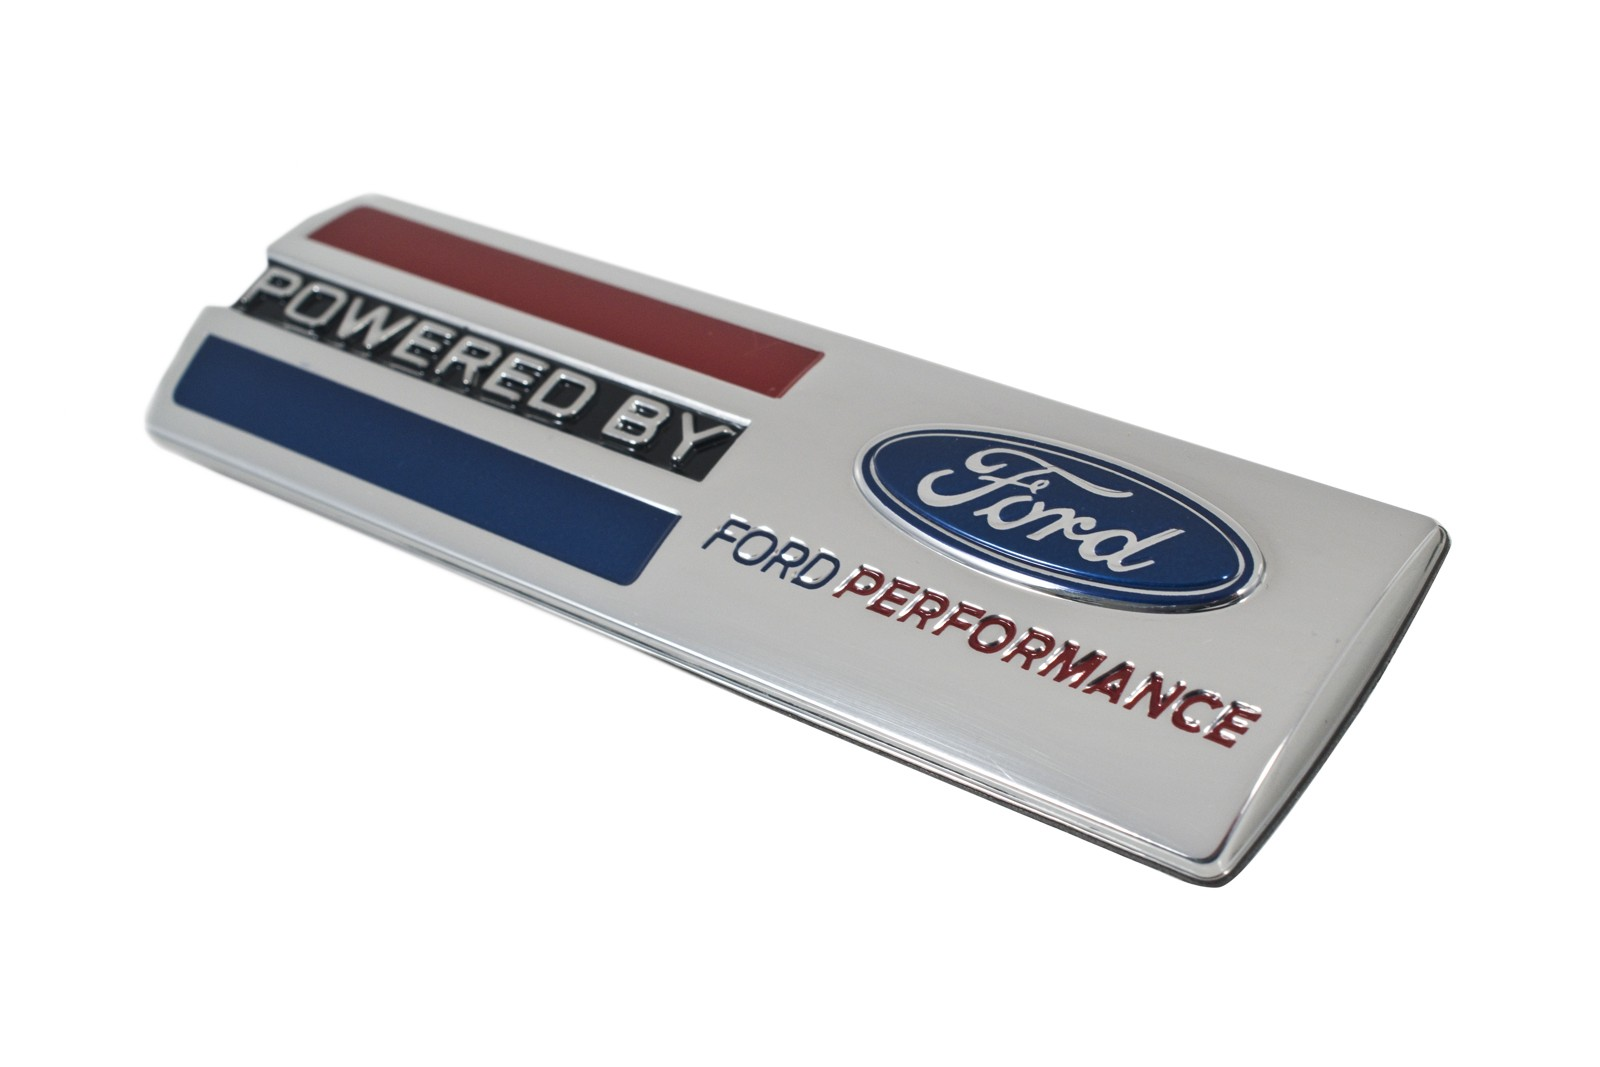 Mustang Quot Powered By Ford Performance Quot 5 5 Quot Emblems W